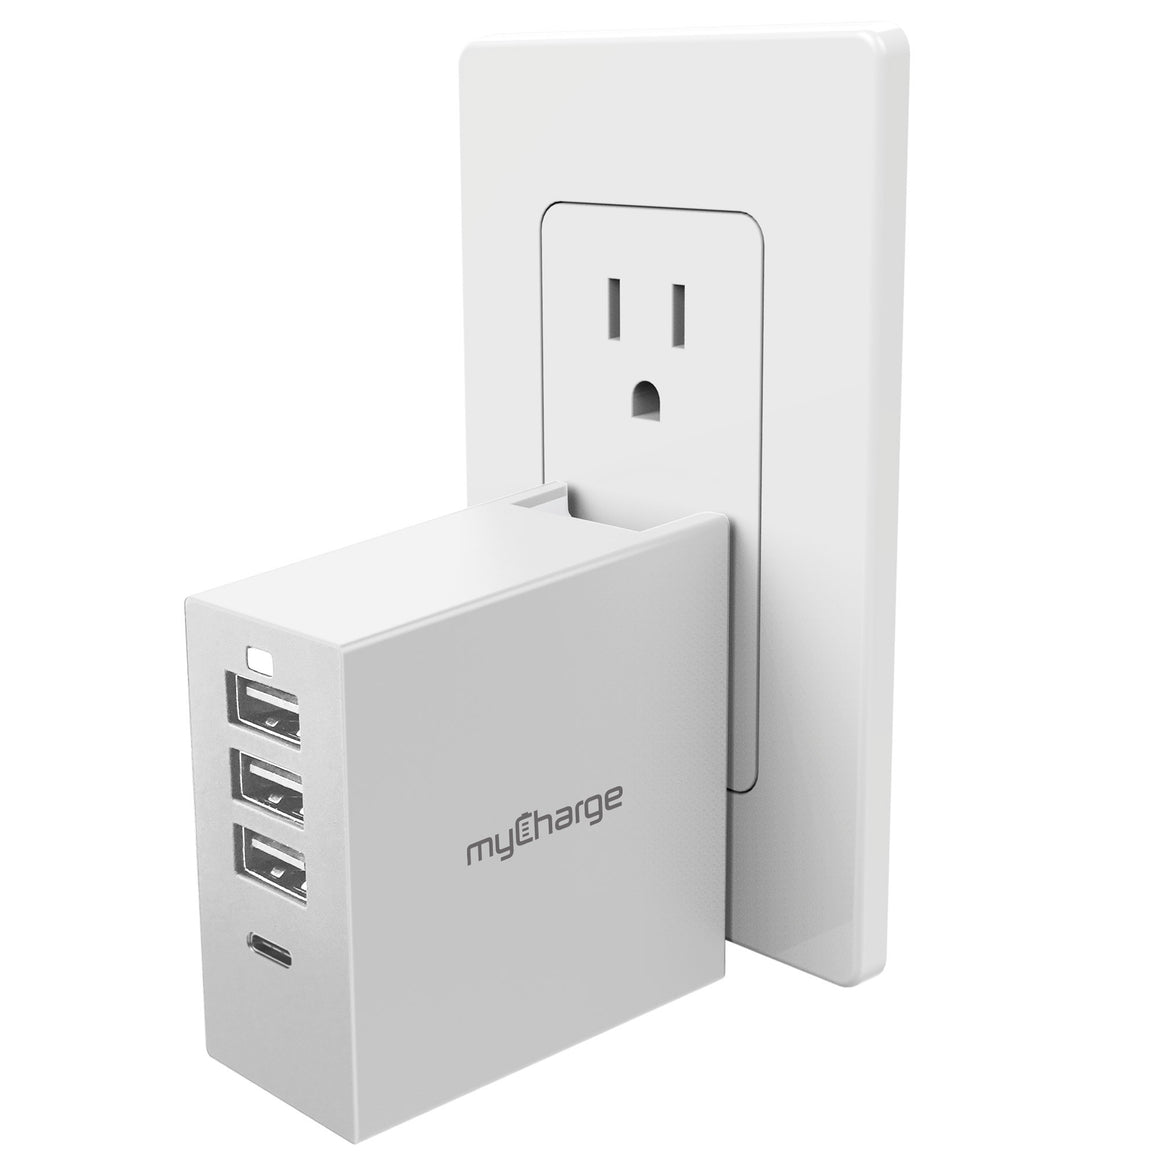 Wall Charging Hub Charge 4 Devices Plugged In